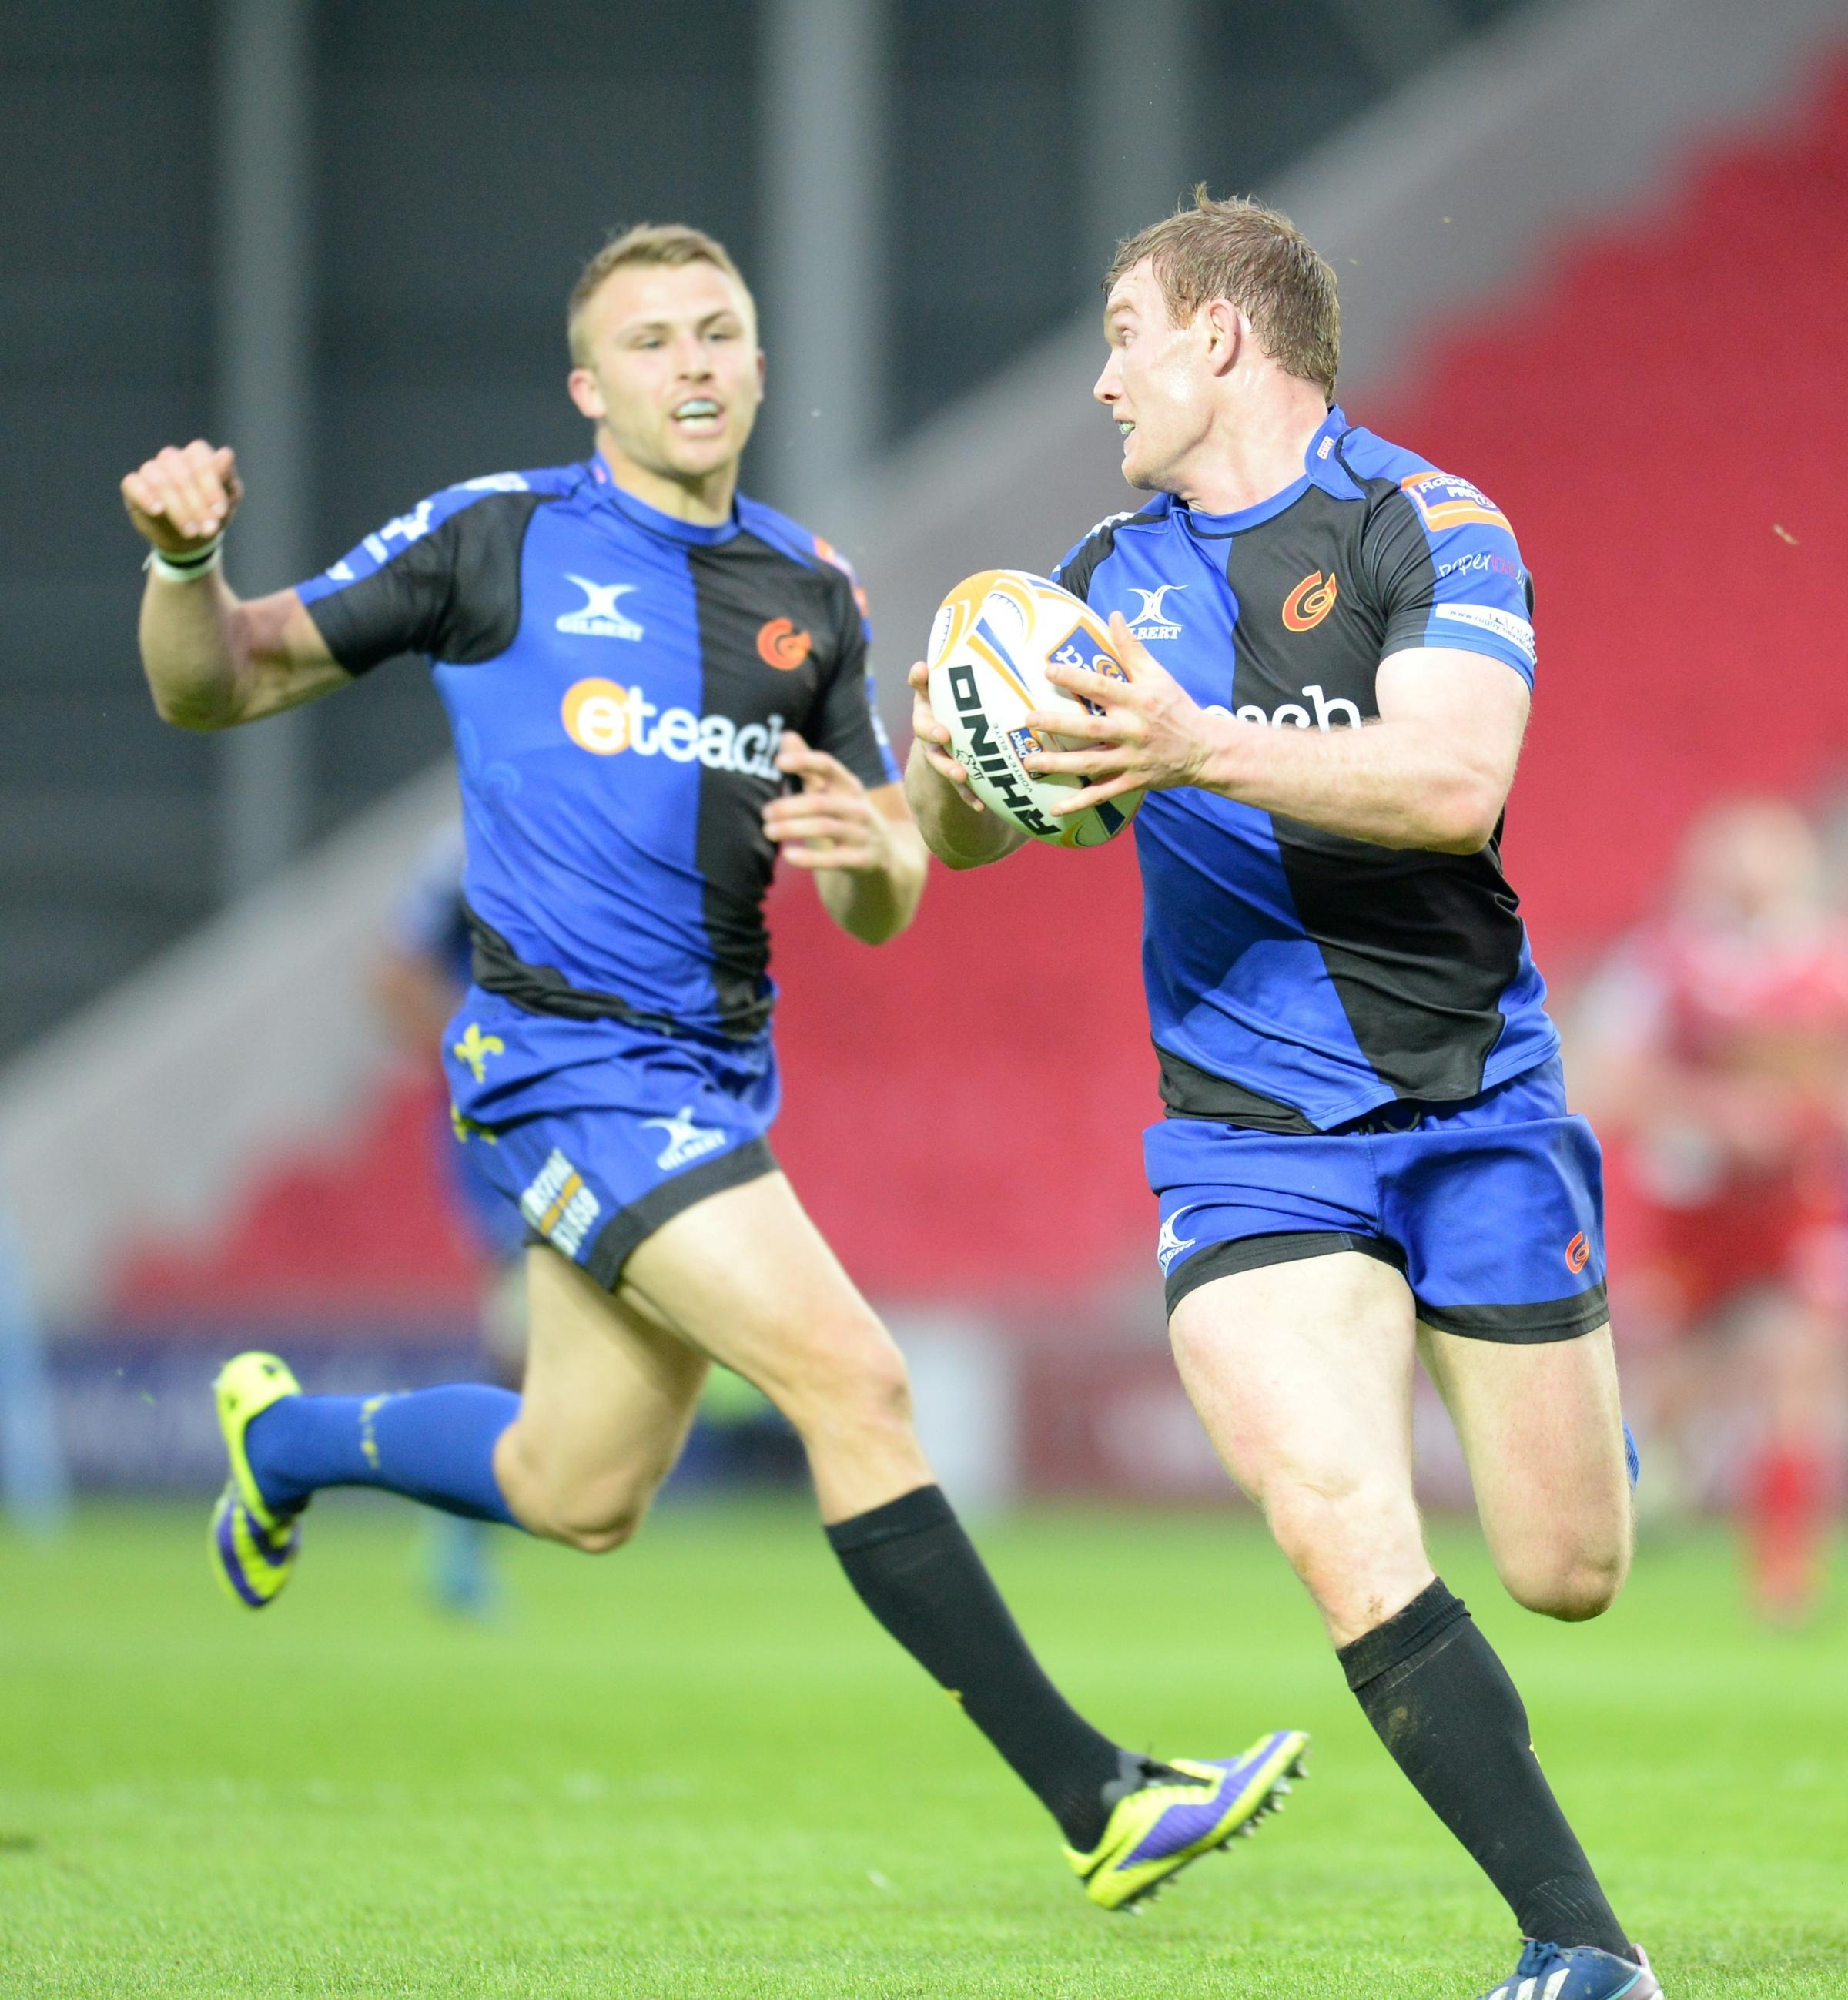 Dragons condemned to being bottom region after Scarlets defeat